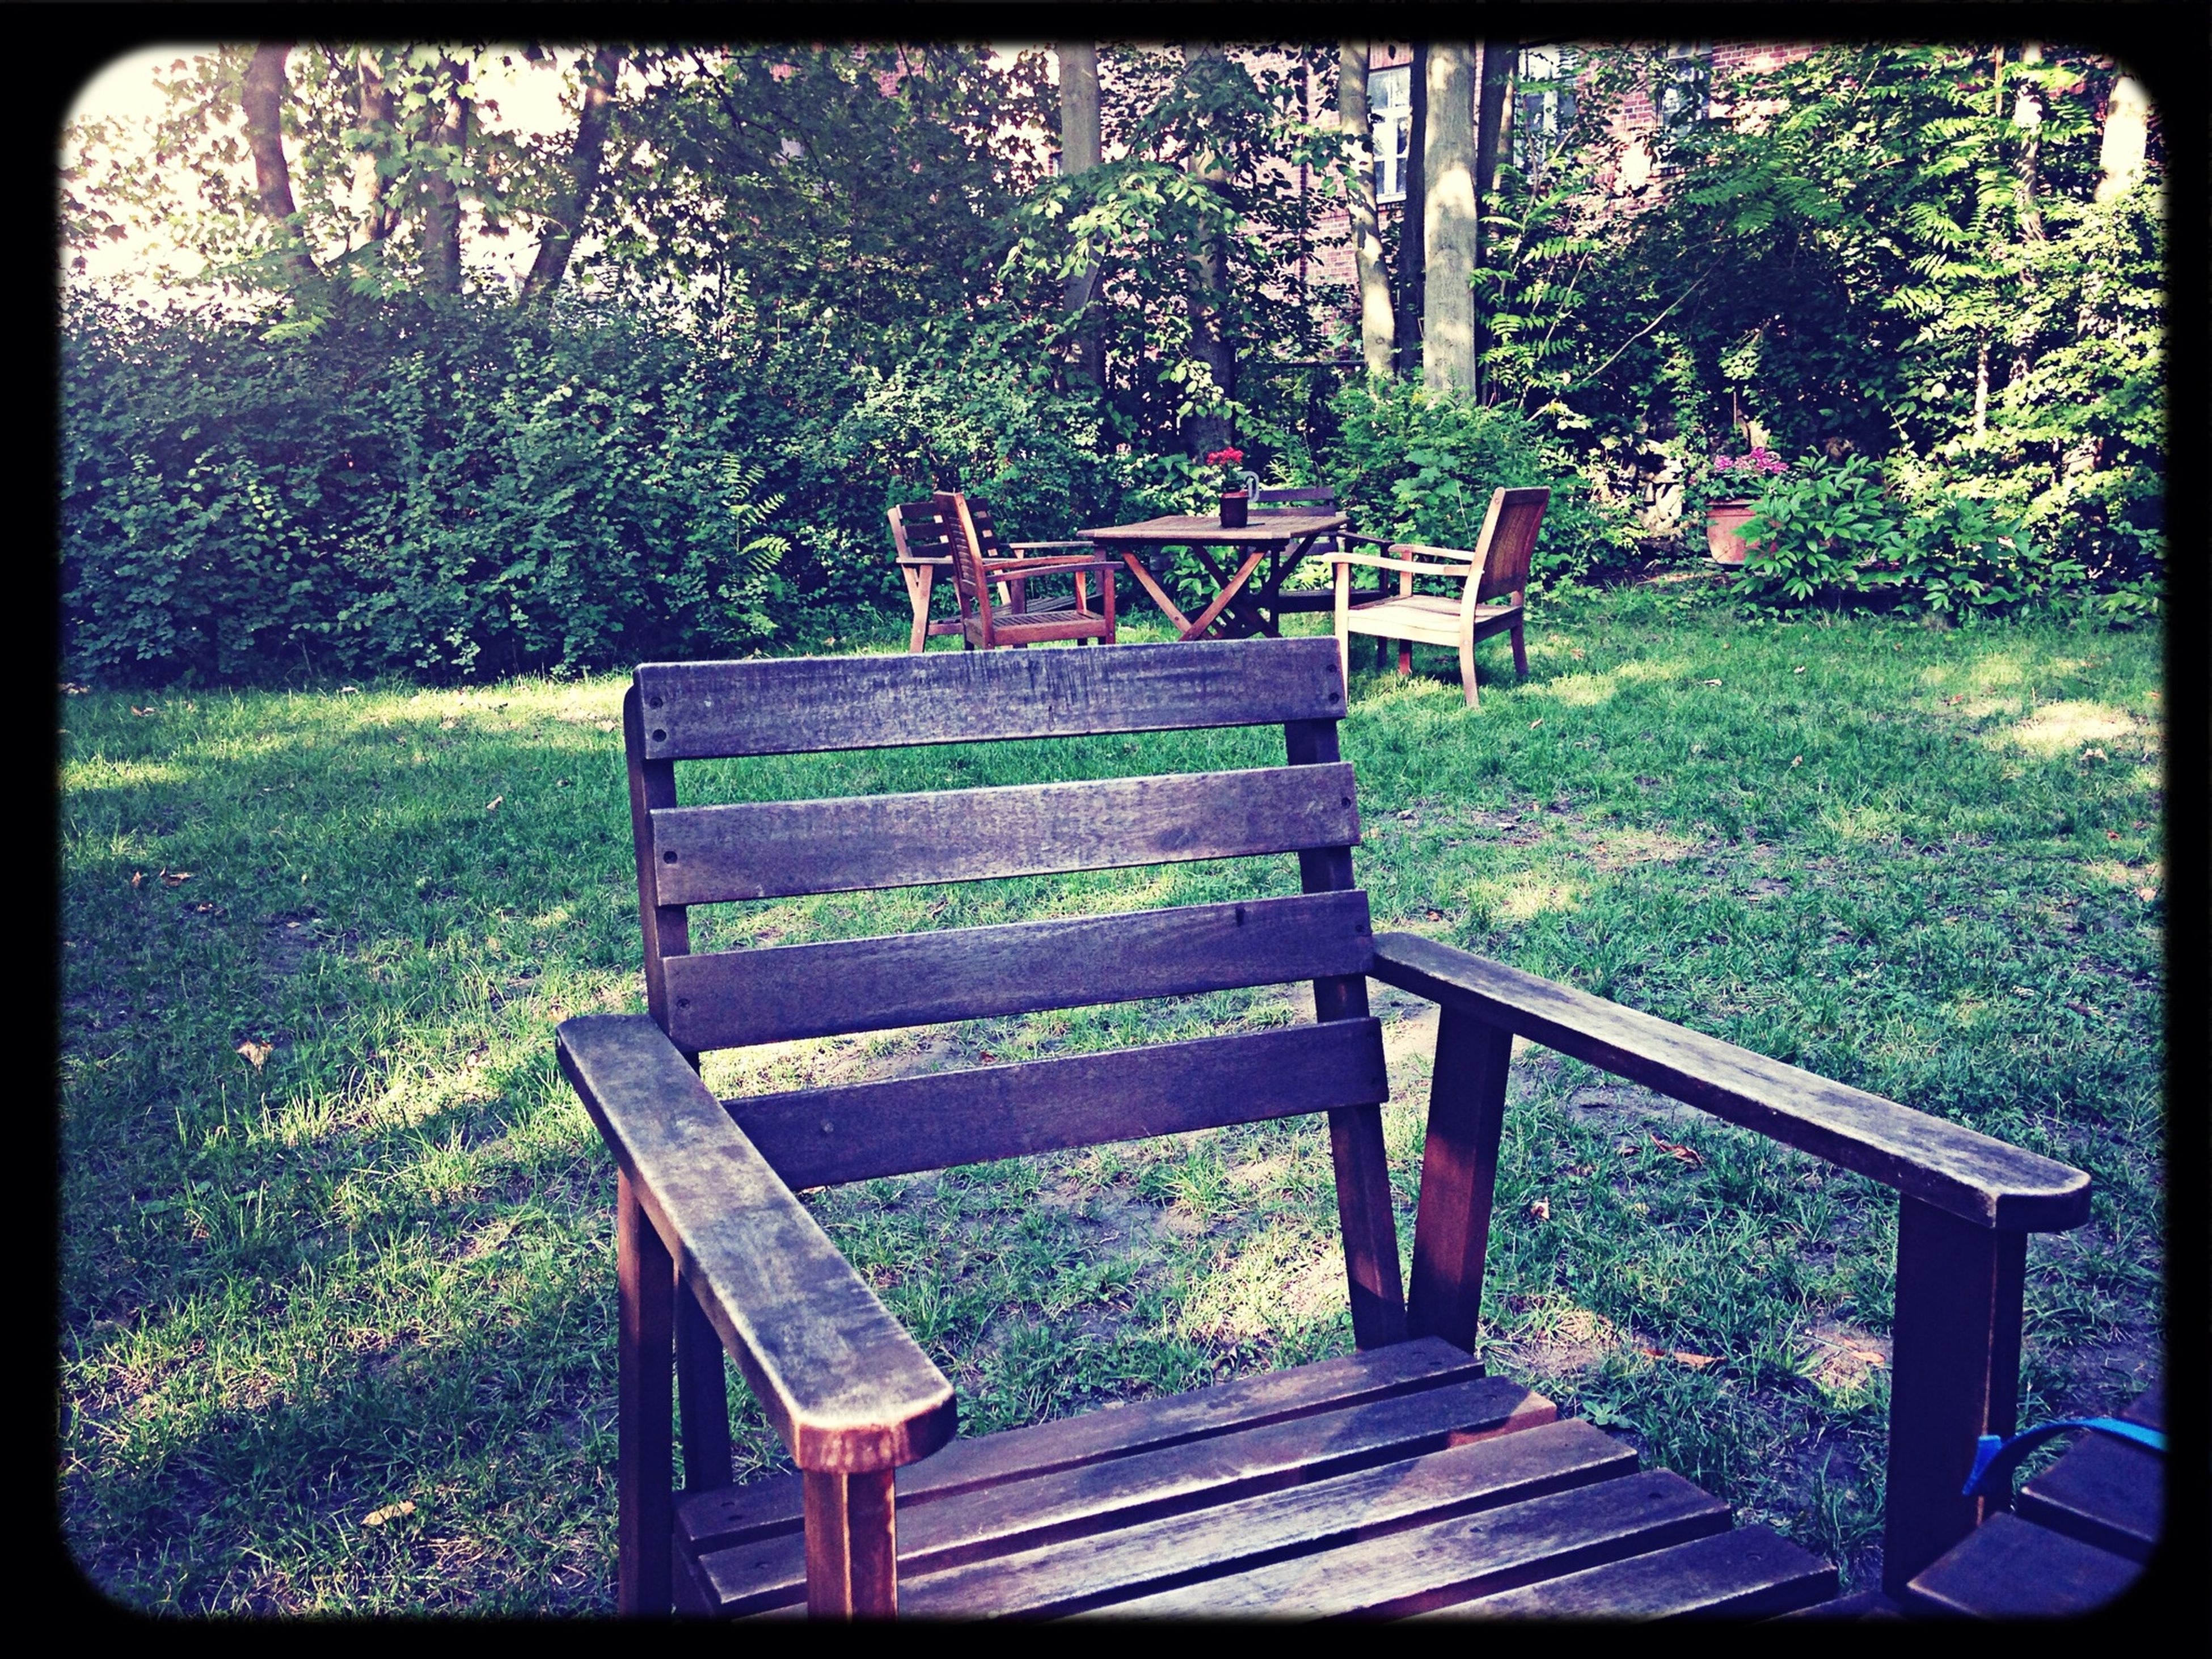 tree, bench, transfer print, growth, empty, wood - material, chair, park bench, absence, park - man made space, green color, tranquility, auto post production filter, plant, nature, seat, wood, wooden, railing, park